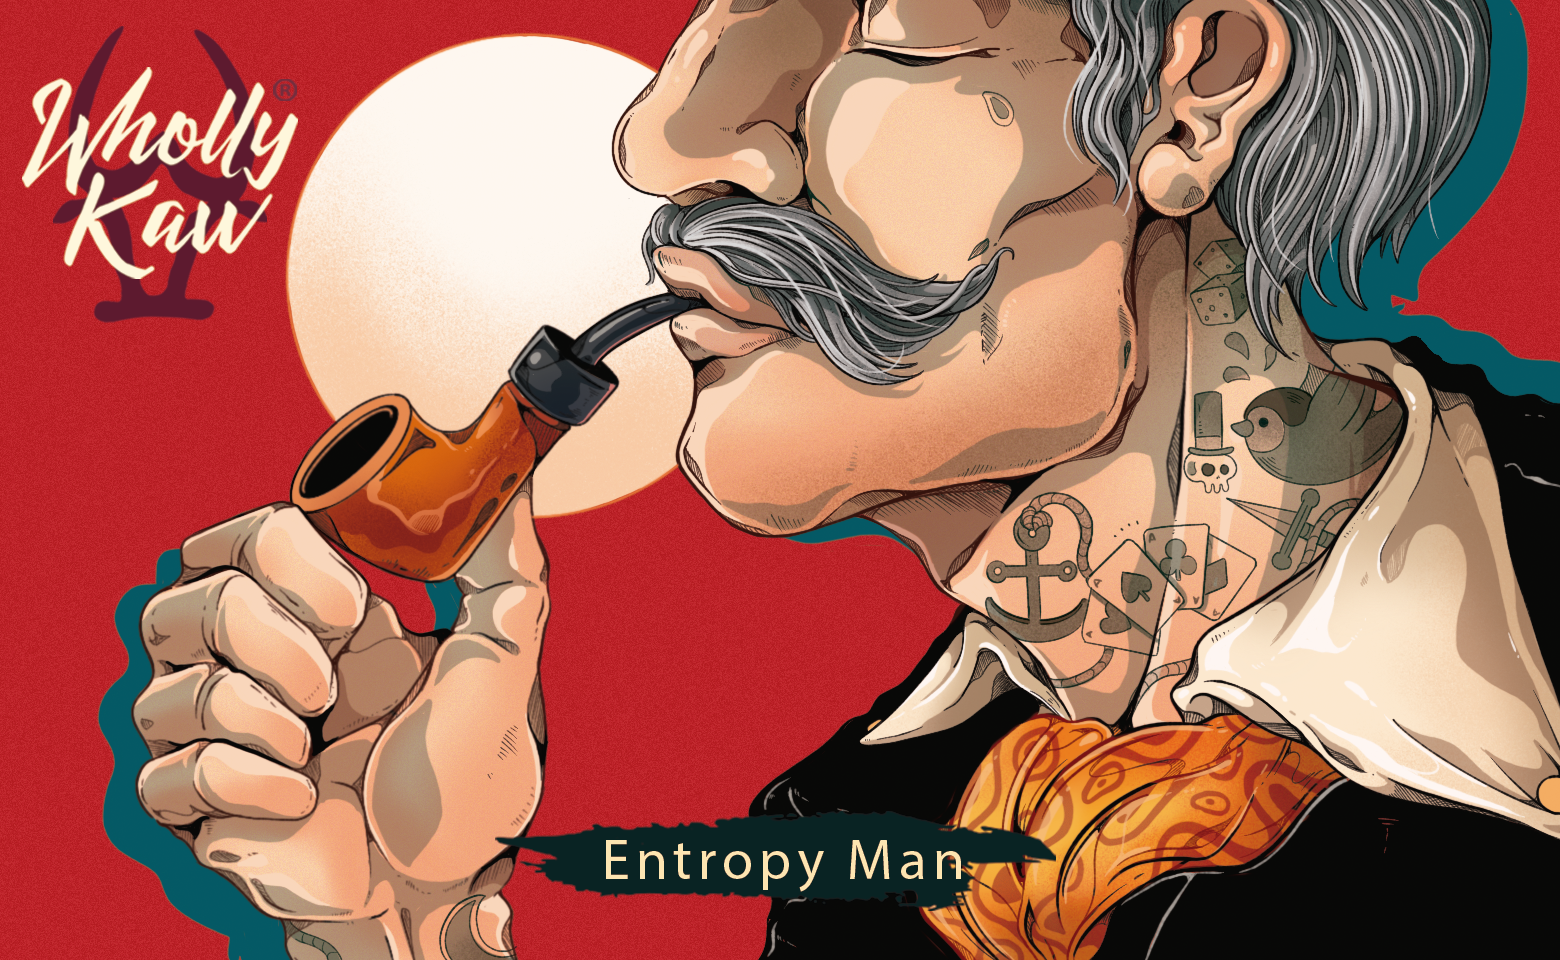 Wholly Kaw - Entropy Man - Aftershave image